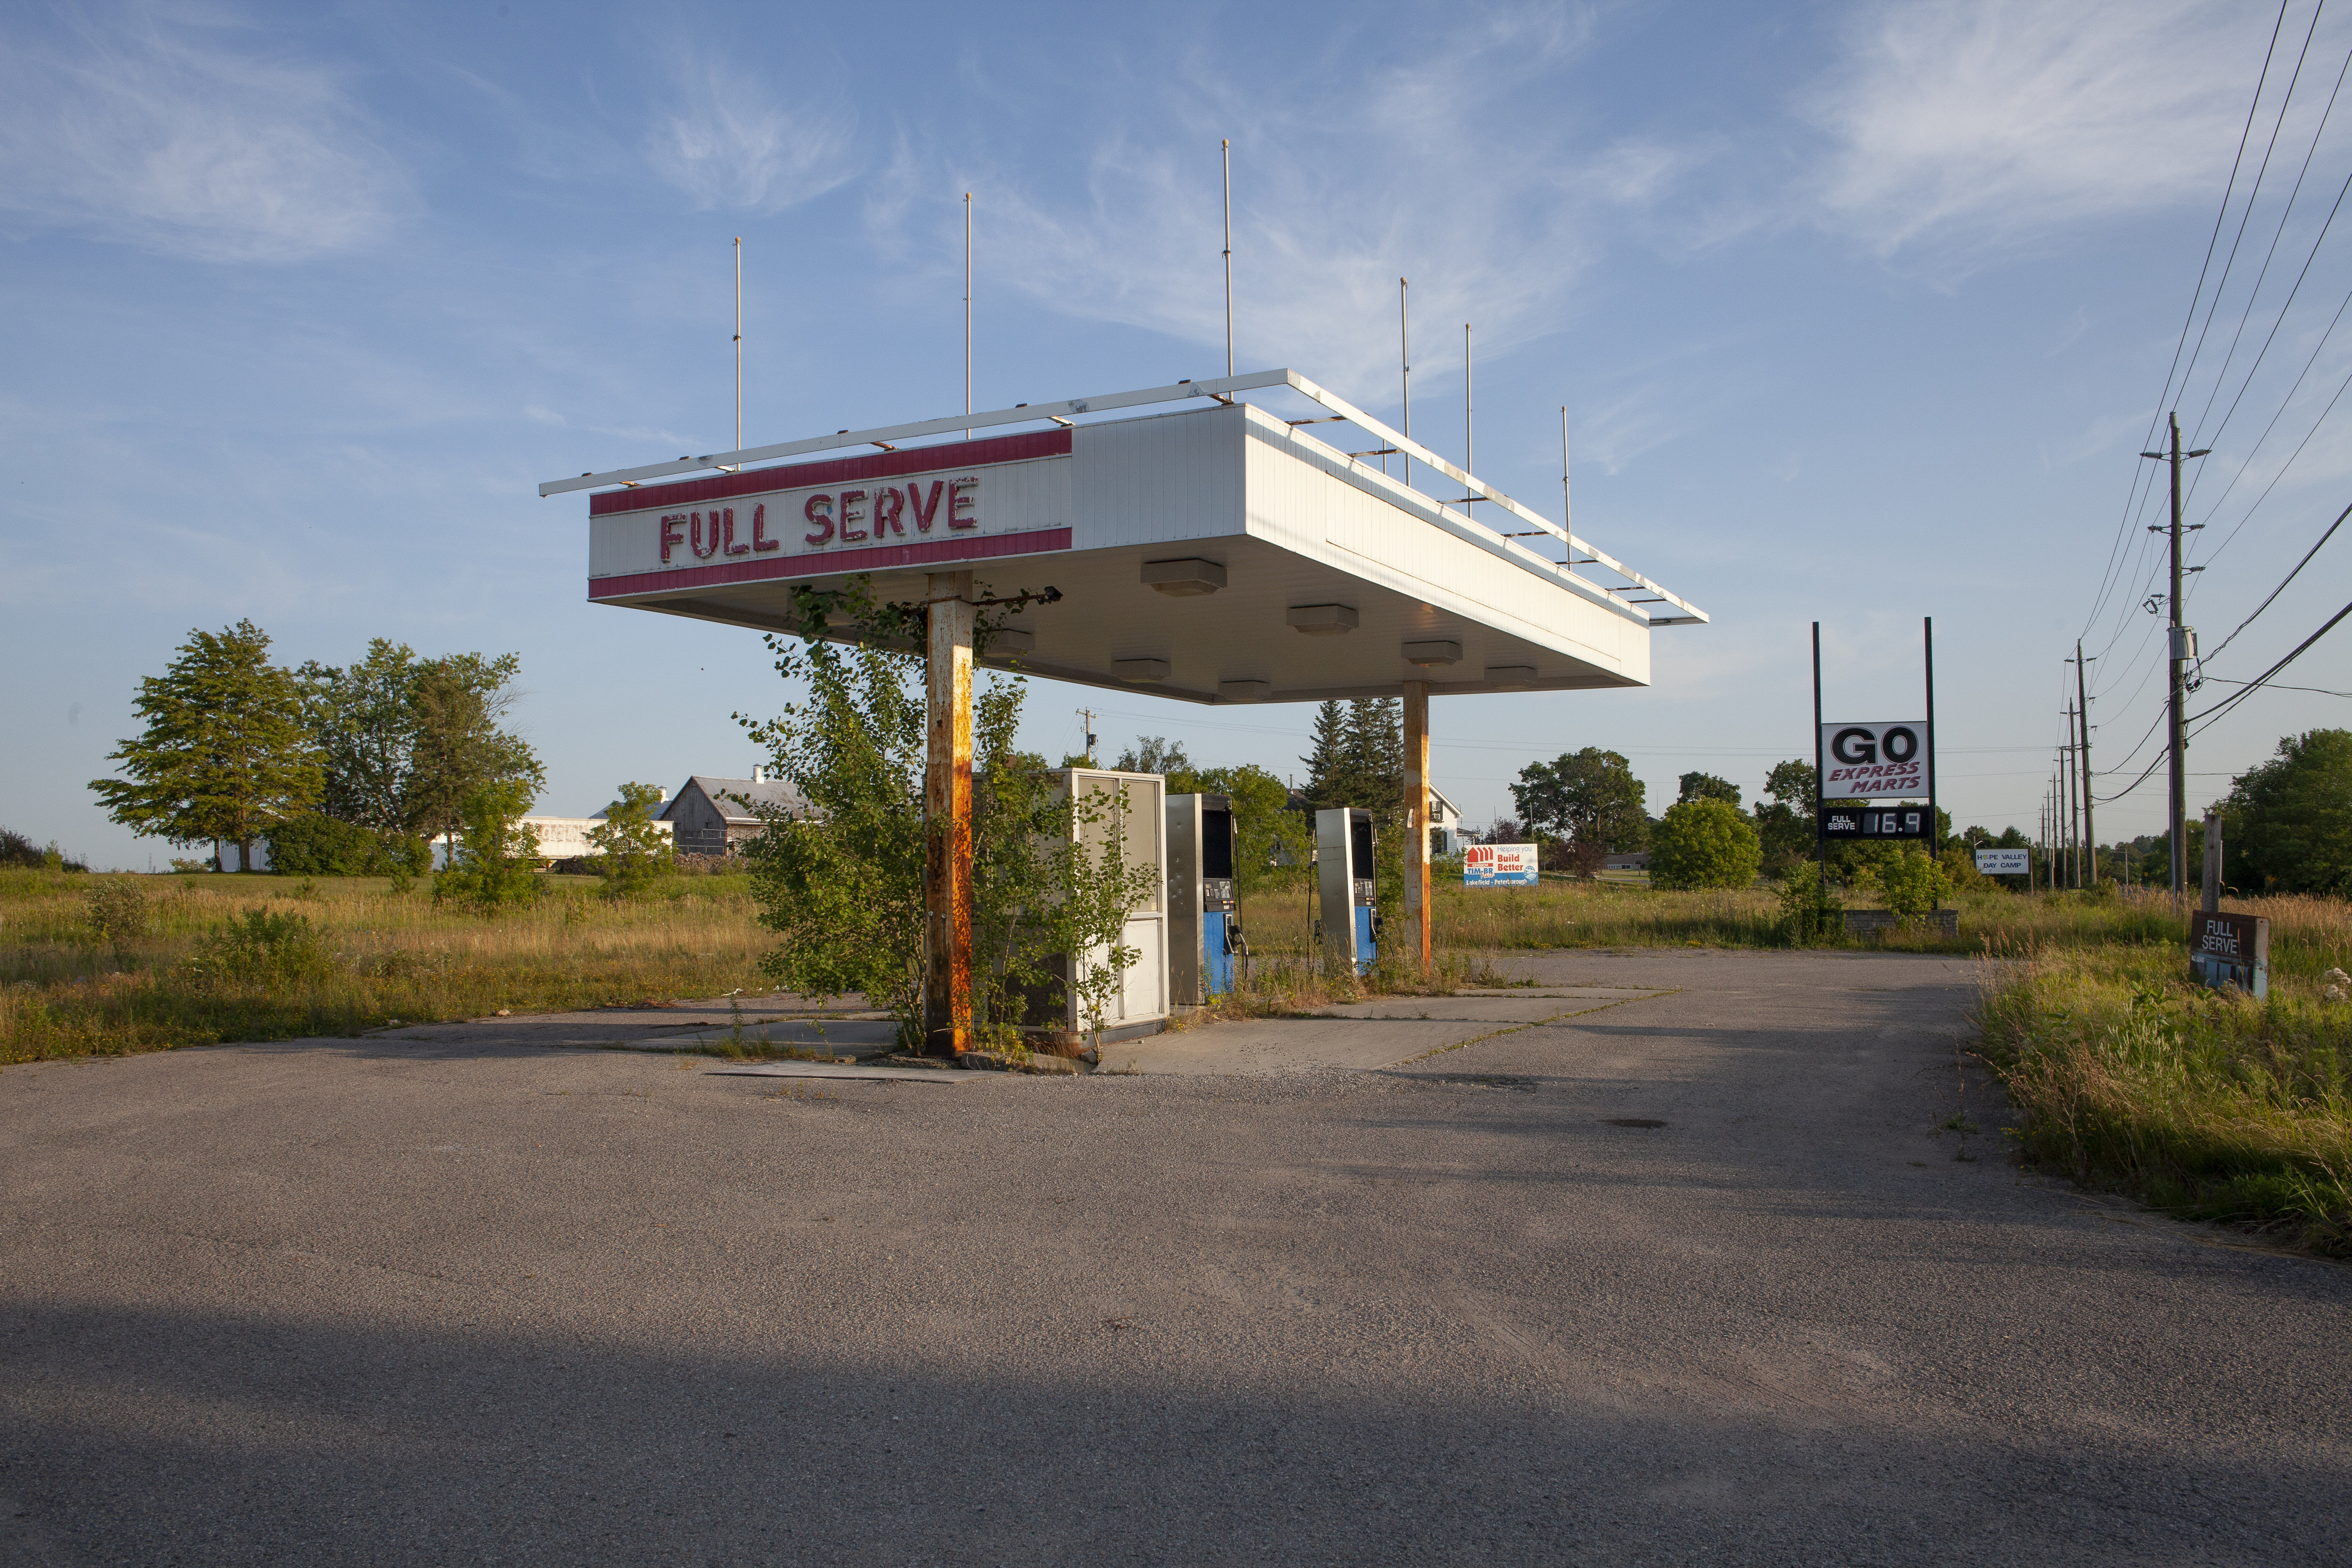 Full Serve Gas Station, Highway 28, Ontario.